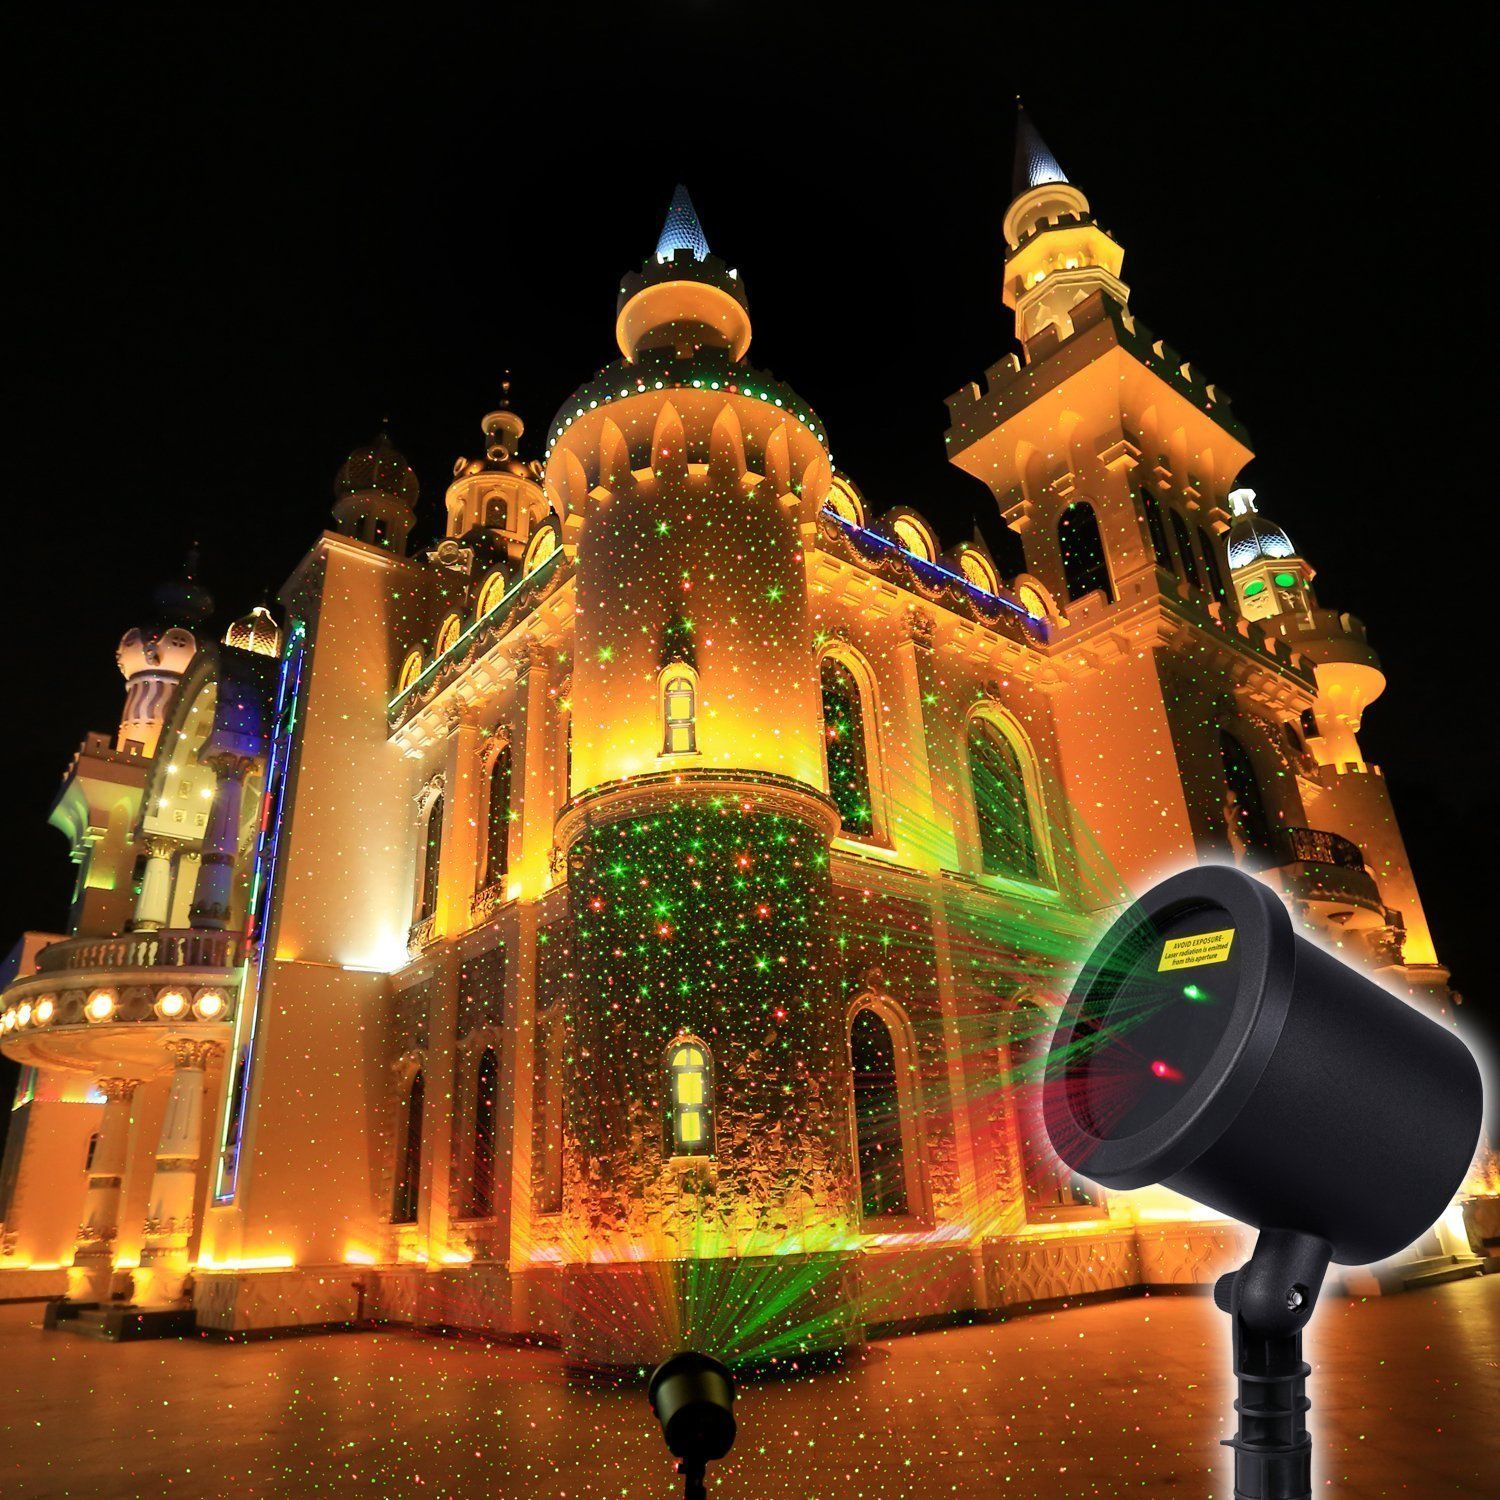 Amazon decolighting waterproof red green laser landscape amazon decolighting waterproof red green laser landscape star projector blinking light for aloadofball Image collections